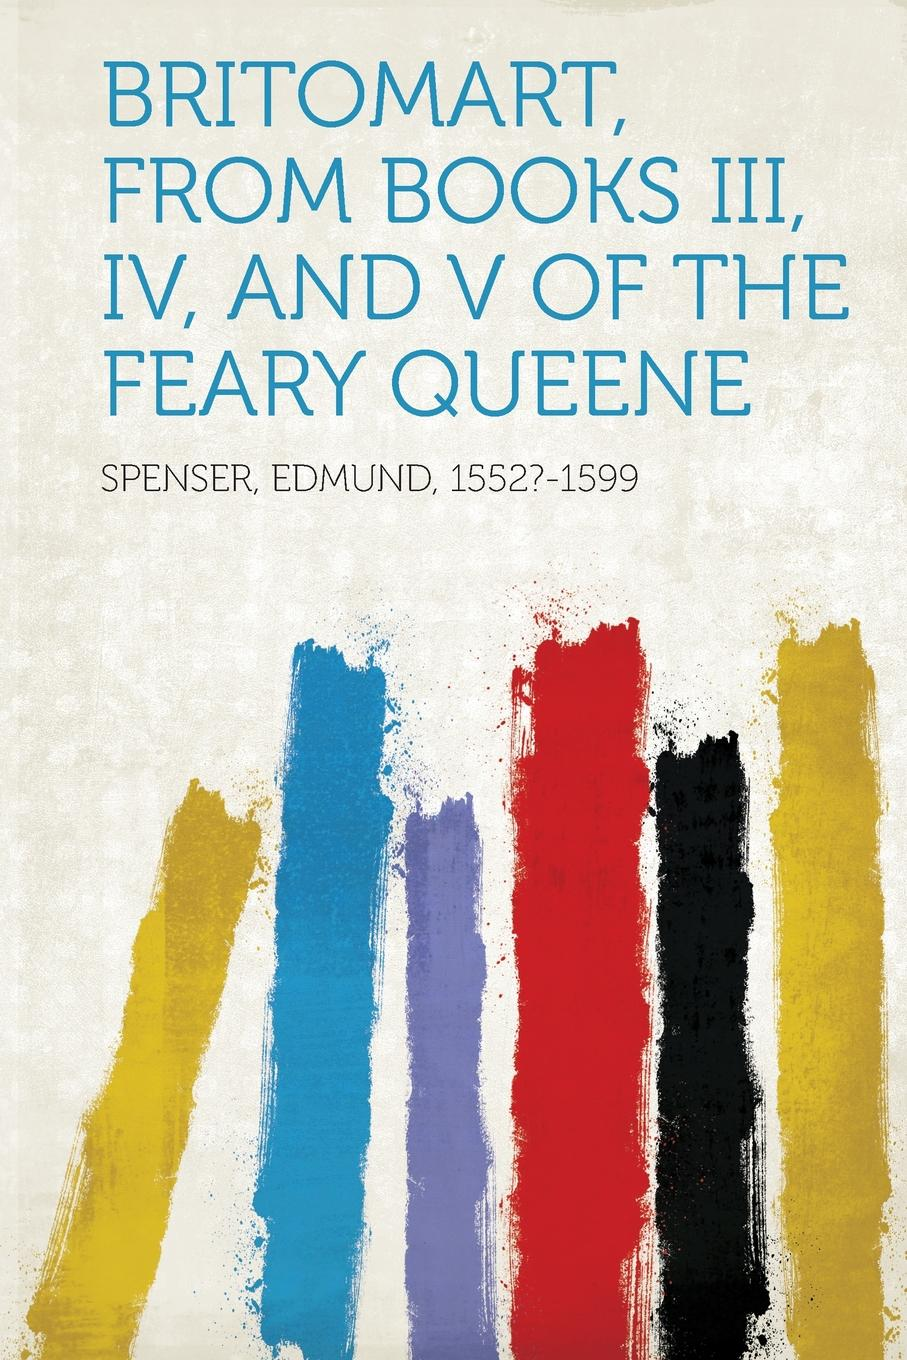 Britomart, from Books III, IV, and V of the Feary Queene